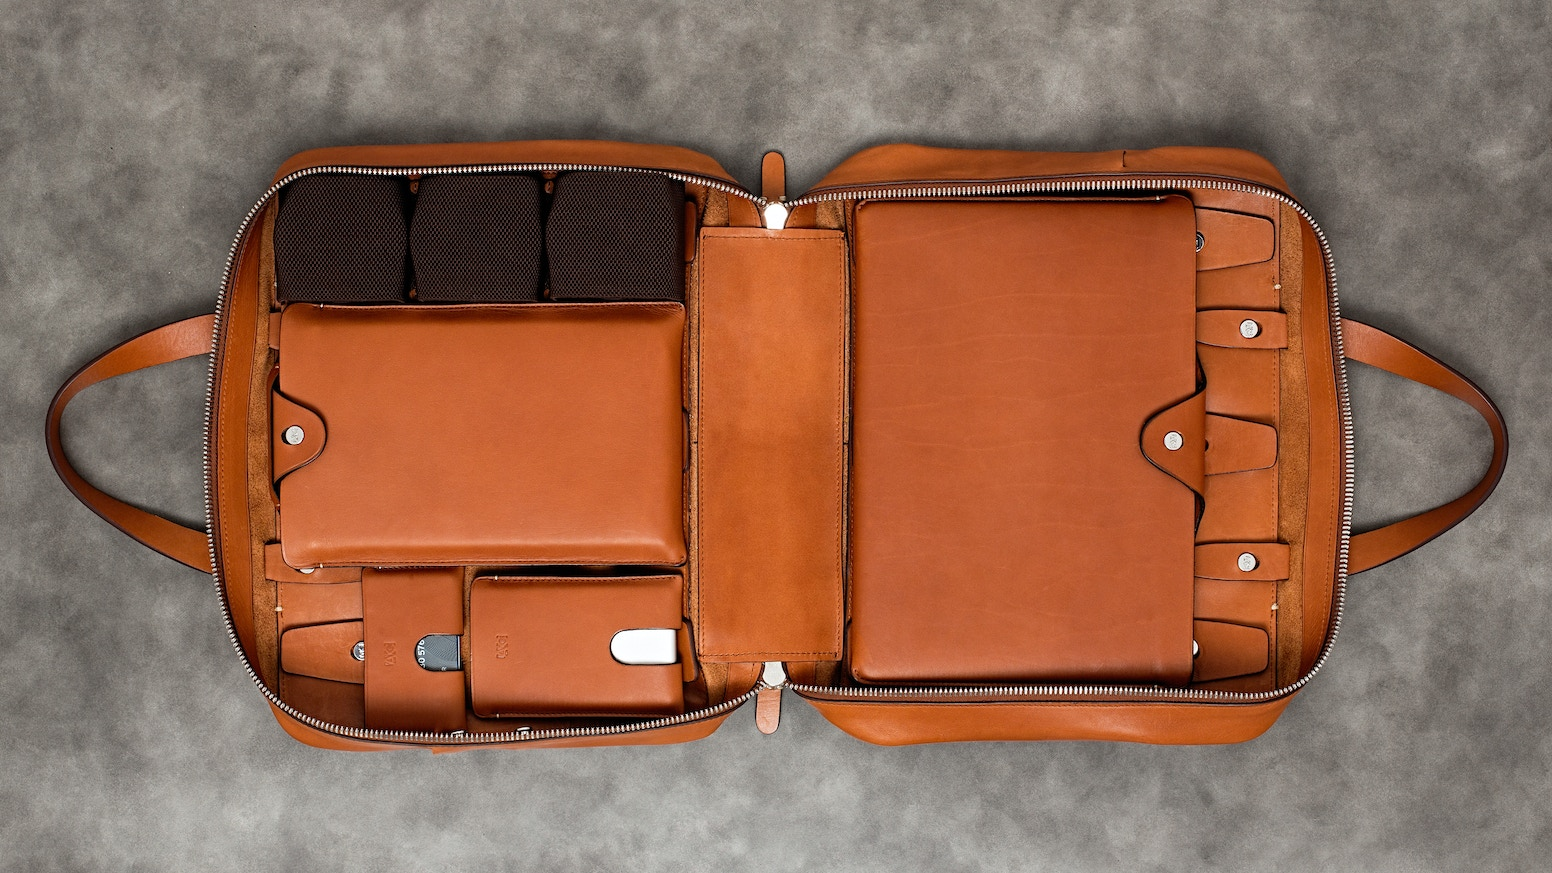 03712a279f Anson Calder Bags and Cases: Customizable Access w/o Excess by ...